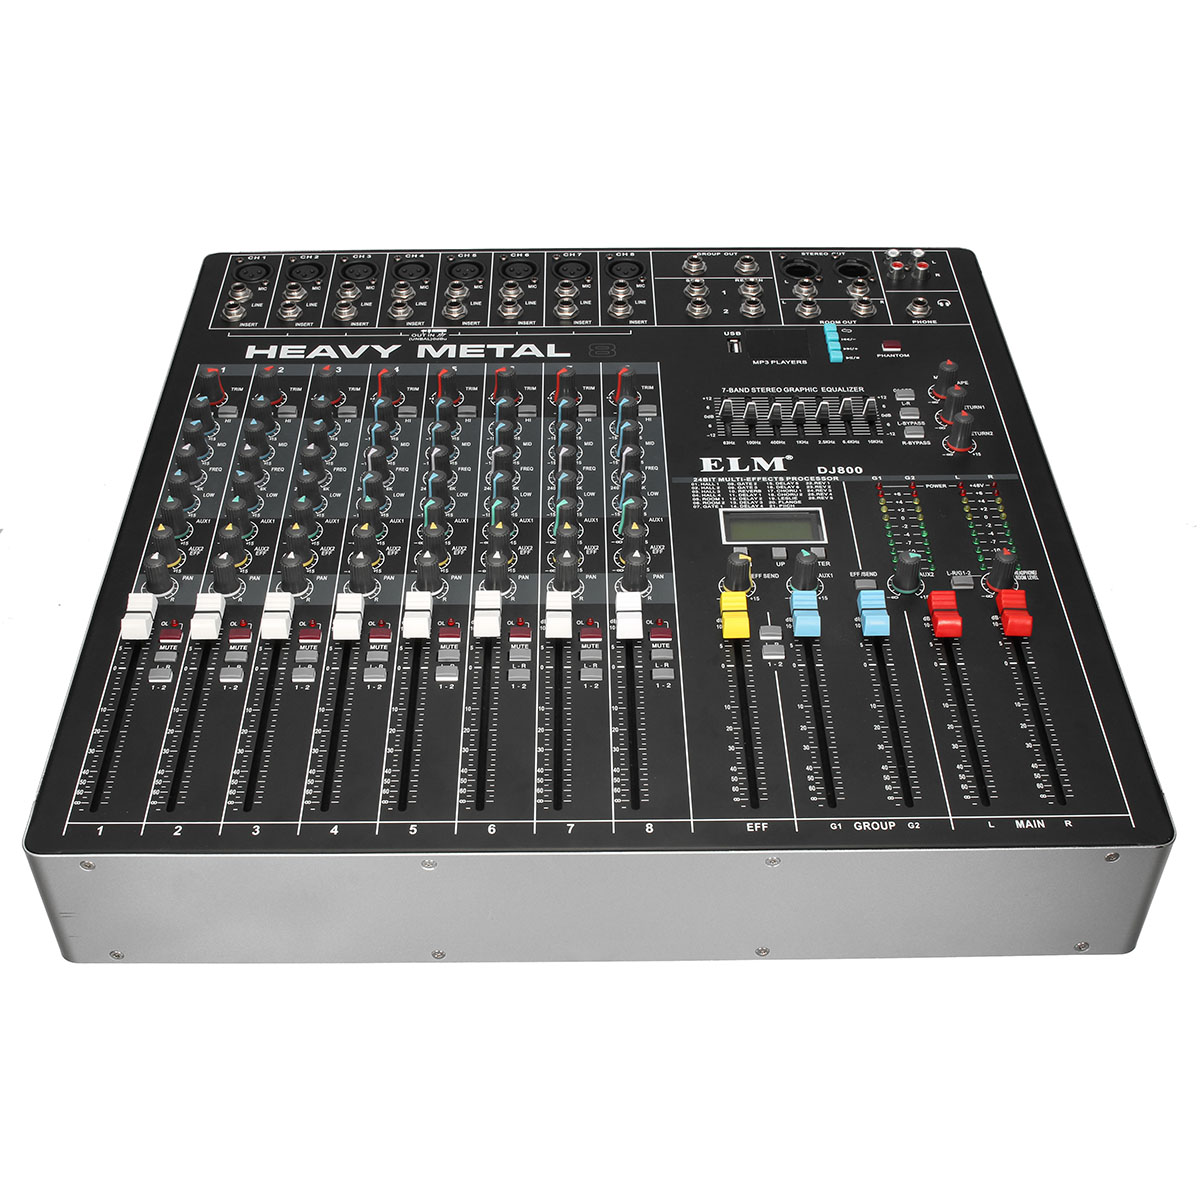 claite professional mixer usb 8 channels audio console 48v phantom power mixing dsp digital. Black Bedroom Furniture Sets. Home Design Ideas